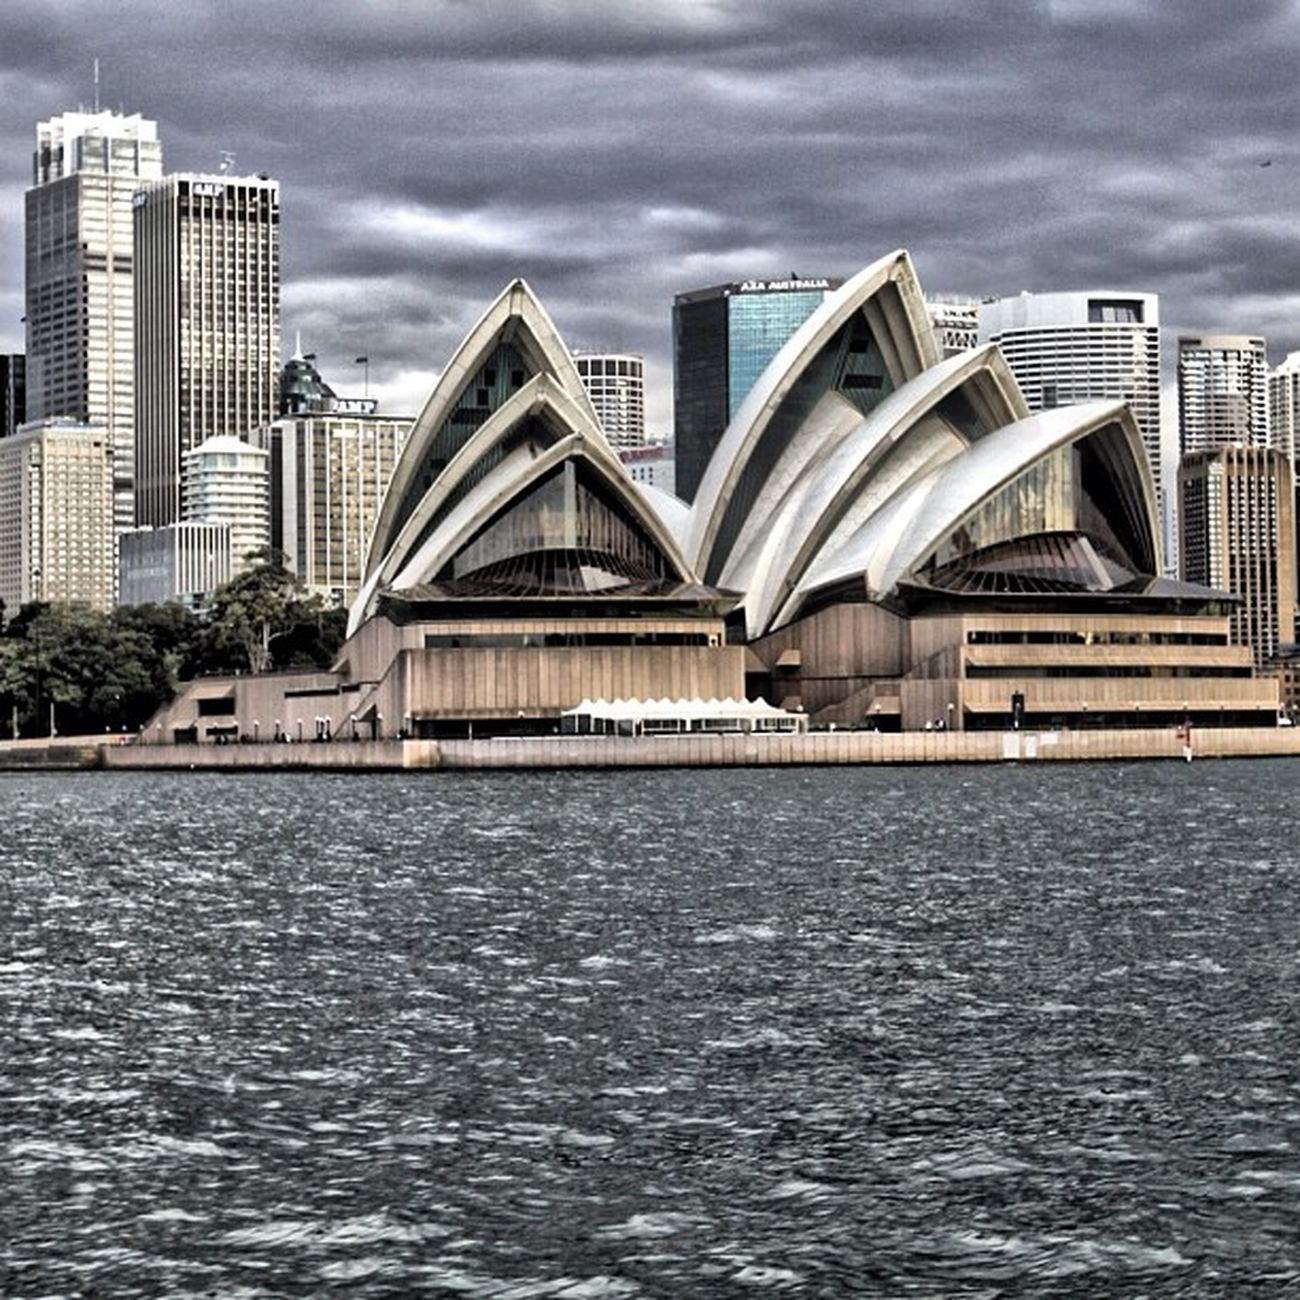 Cloudy Aussie Friendsoftheworld Ig_outkast HDR Hdr_styles Instanusantara Hdr_real Genginsapgan Gi_challenge_6612 Gang_family Dark_elite Hdrdynasty Blue_colours HdrIndonesia Dark_rev Gi_hdronly Open_dynasty HDR_Indonesia Hdrartsclub Hdroftheday Hdrdarkside Hdrama Ig_syles Hdrepublic The_dark_side Iphoneasia Igcaptions Hdr_pics Sfx_hdr